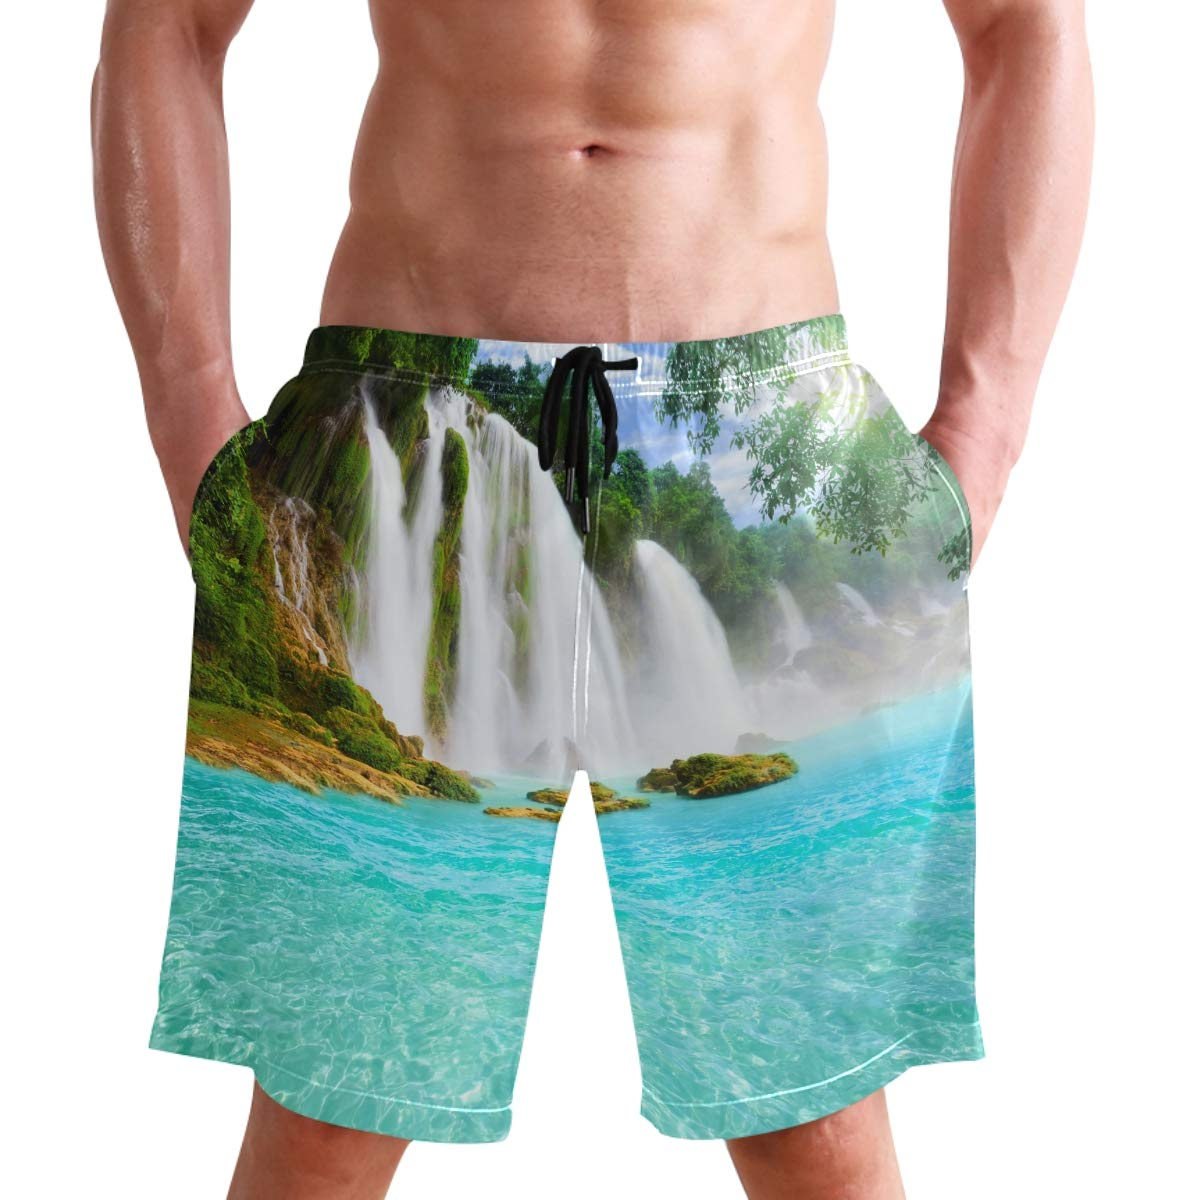 WIHVE Mens Swim Trunks Waterfall Spring Forest Beach Board Shorts with Lining